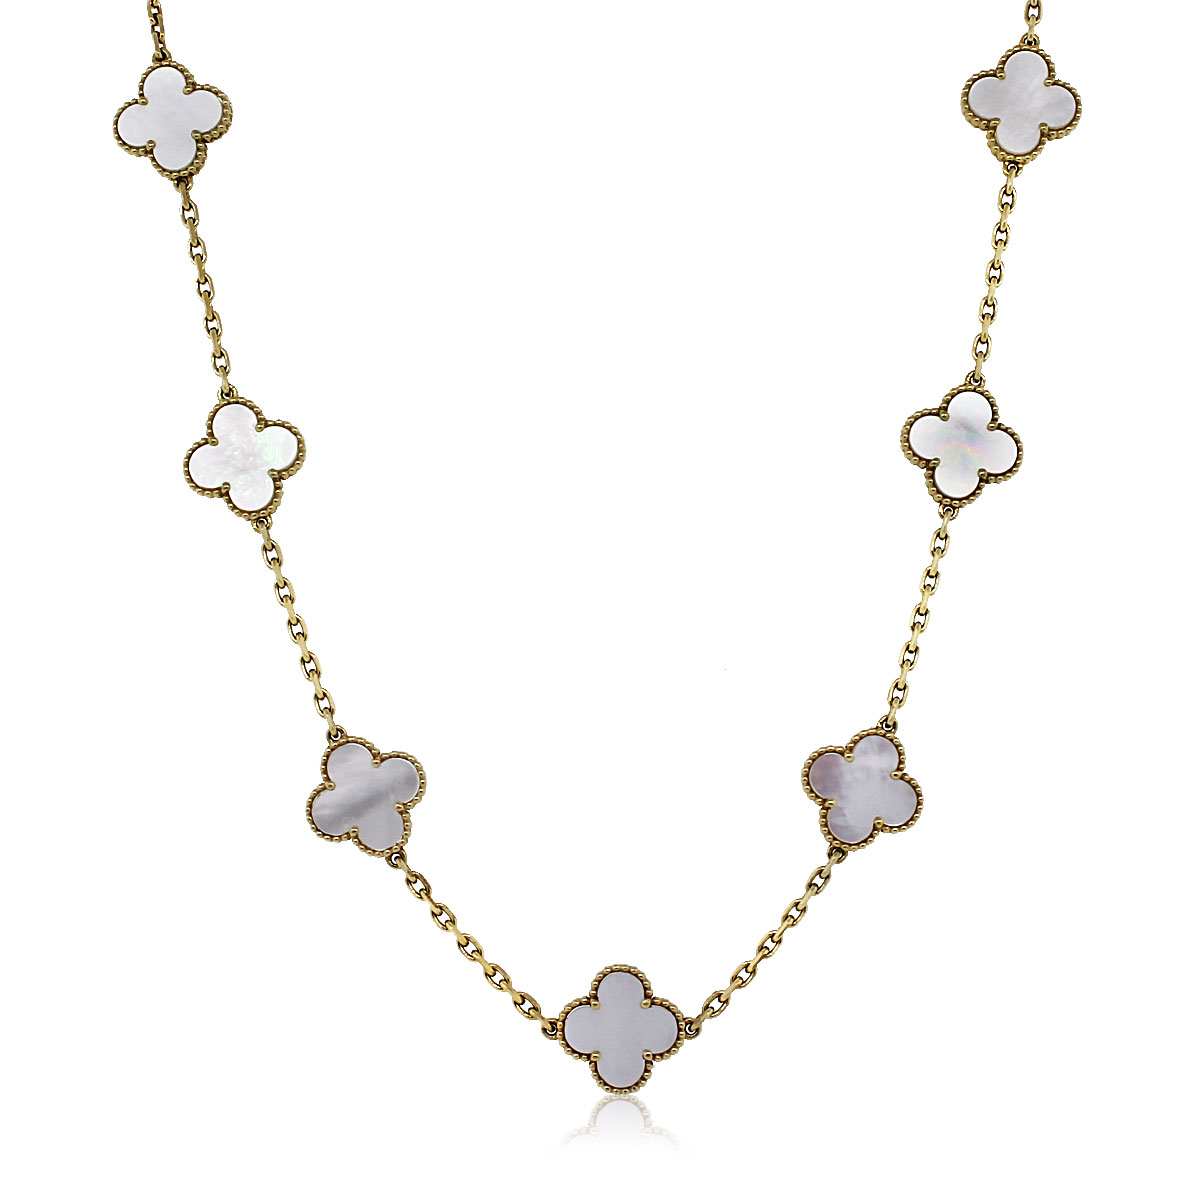 Van Cleef And Arpels Mother Of Pearl Necklace: Van Cleef & Arpels 10 Motif Mother Of Pearl Alhambra Necklace